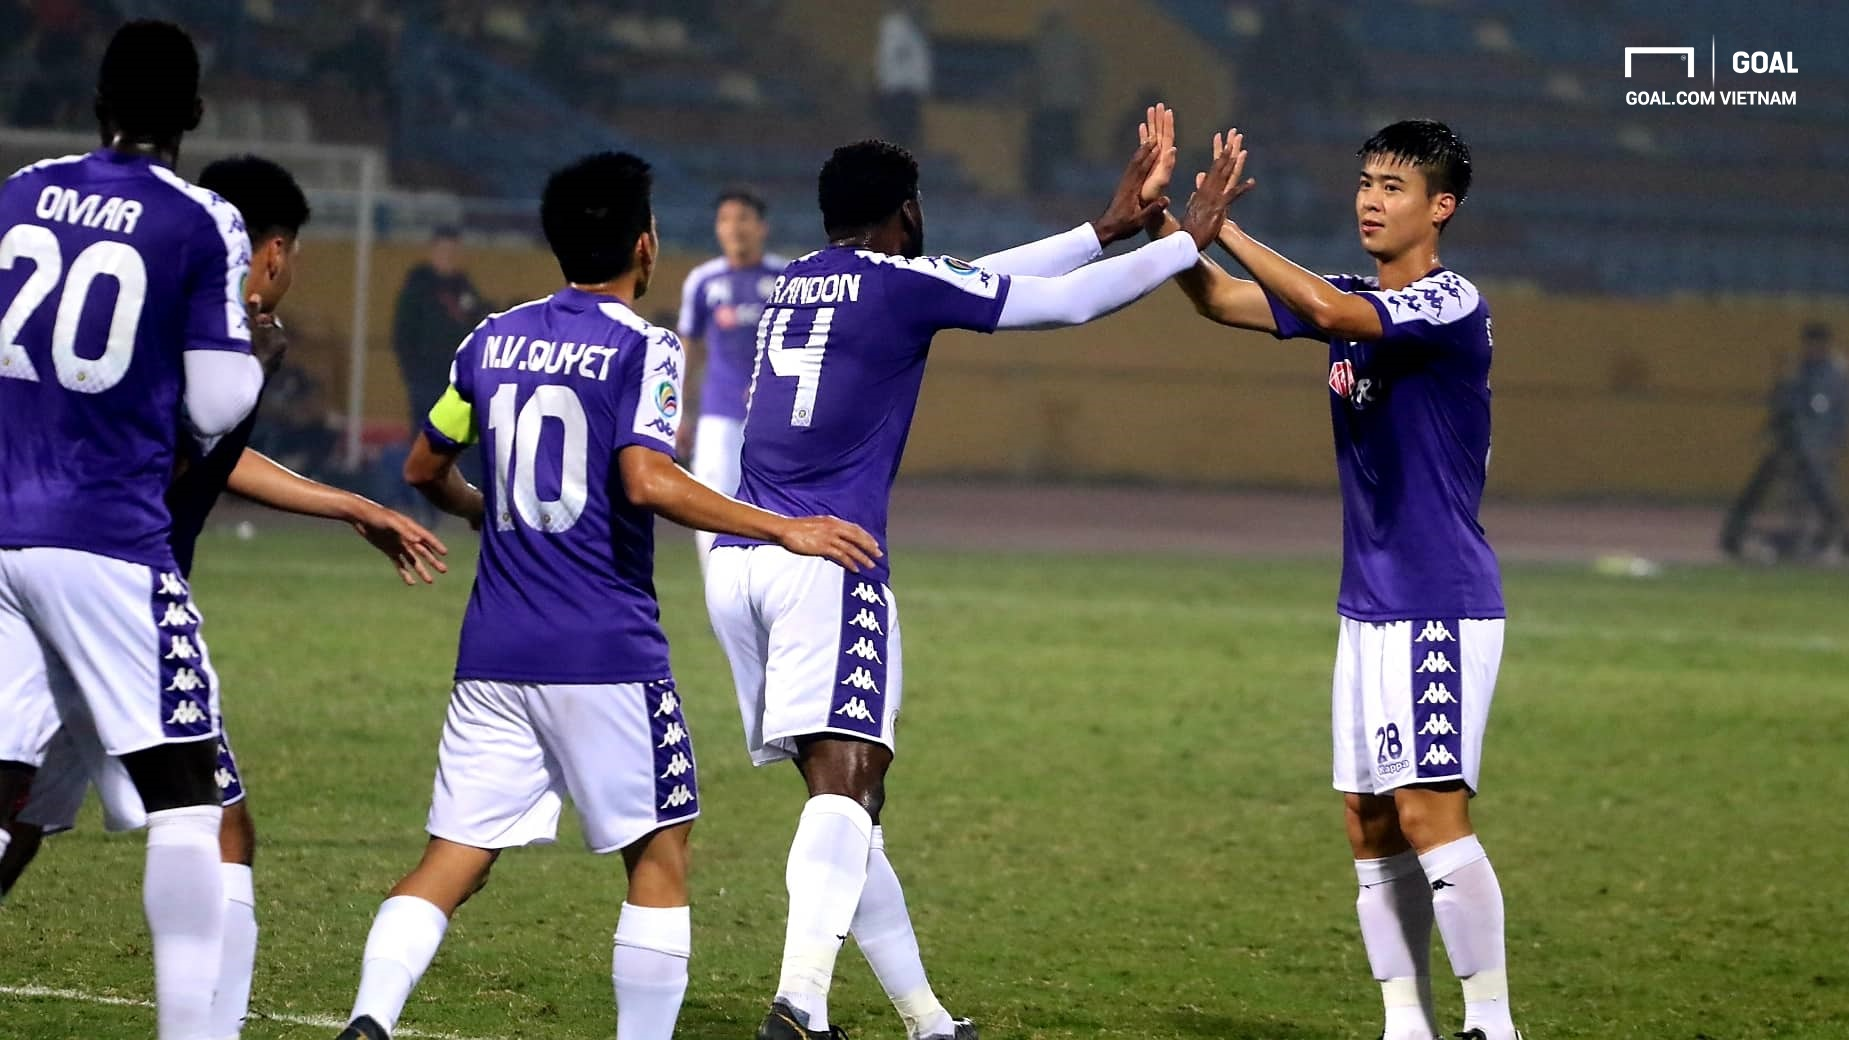 Do Duy Manh Ha Noi FC Nagaworld AFC Champions League 2019